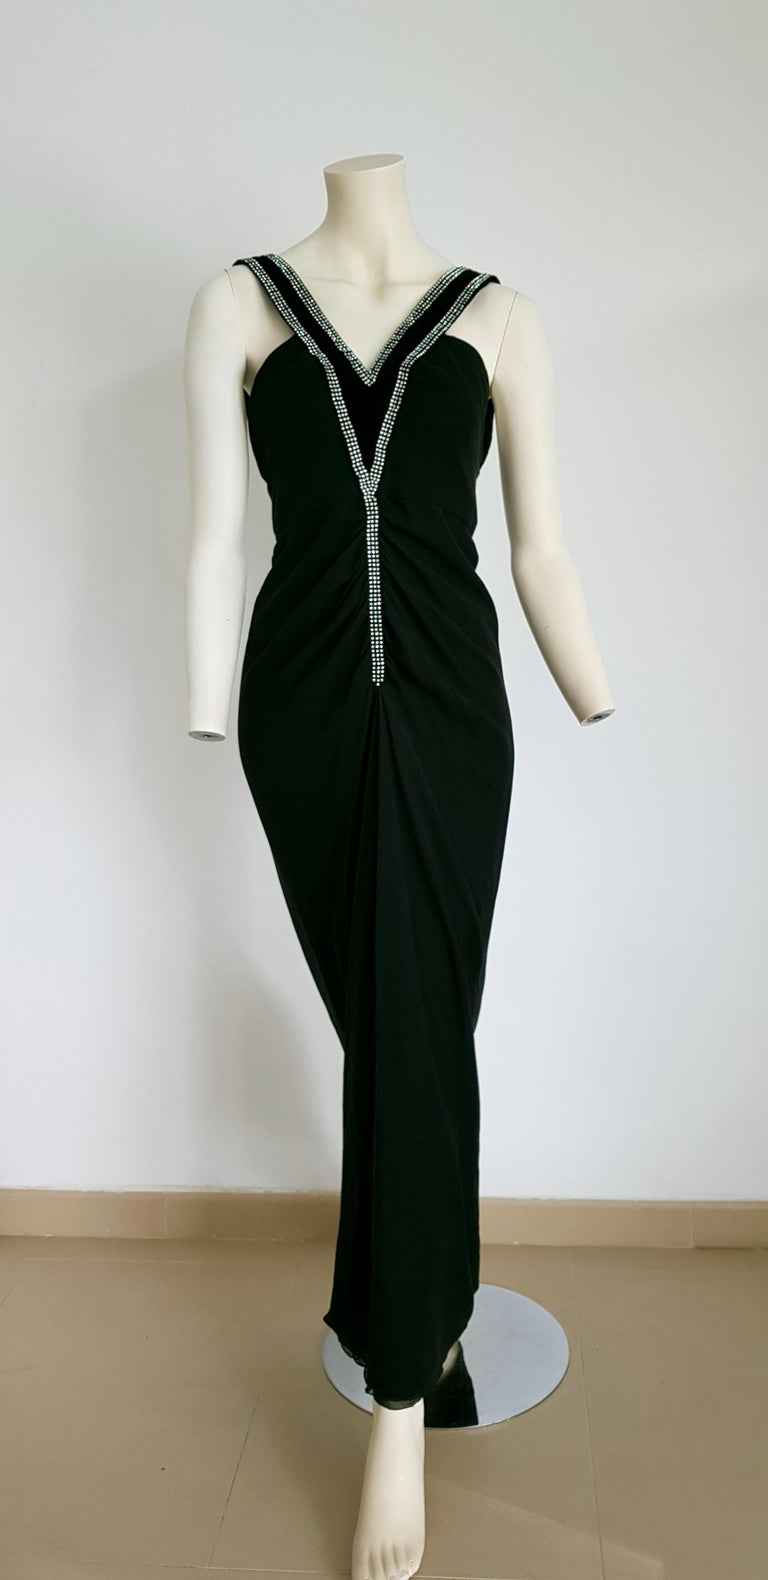 VALENTINO Haute Couture swarovski diamonds on black velvet straps with V shape, silk gown - Unworn, new  SIZE: equivalent to about Small / Medium, please review approx measurements as follows in cm: lenght 145, chest underarm to underarm 48, bust